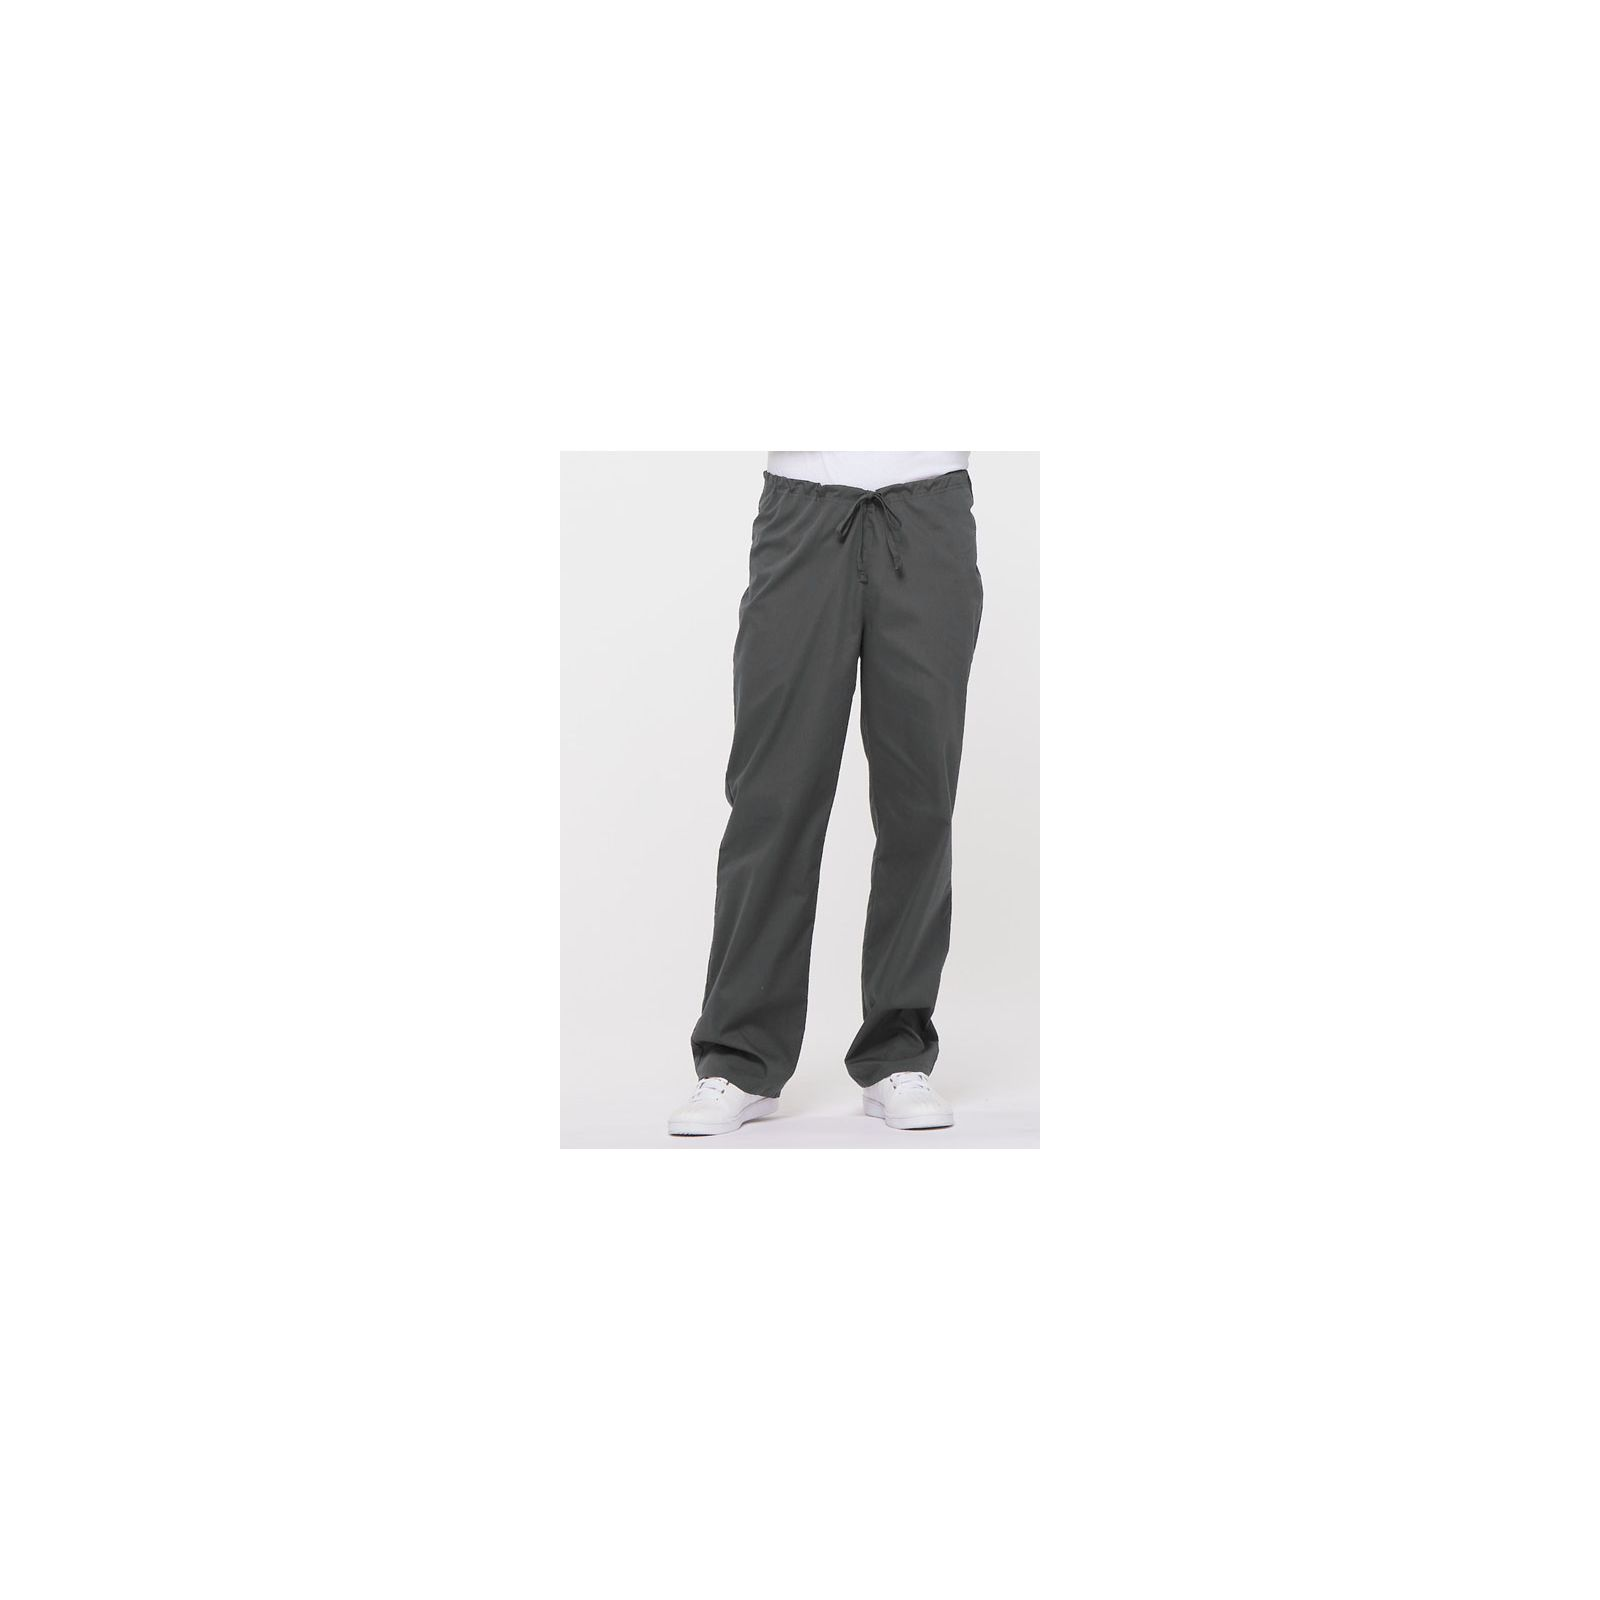 "Pantalon médical Unisexe Cordon, Dickies, Collection ""EDS signature"" (83006) gris anthracite vue face"